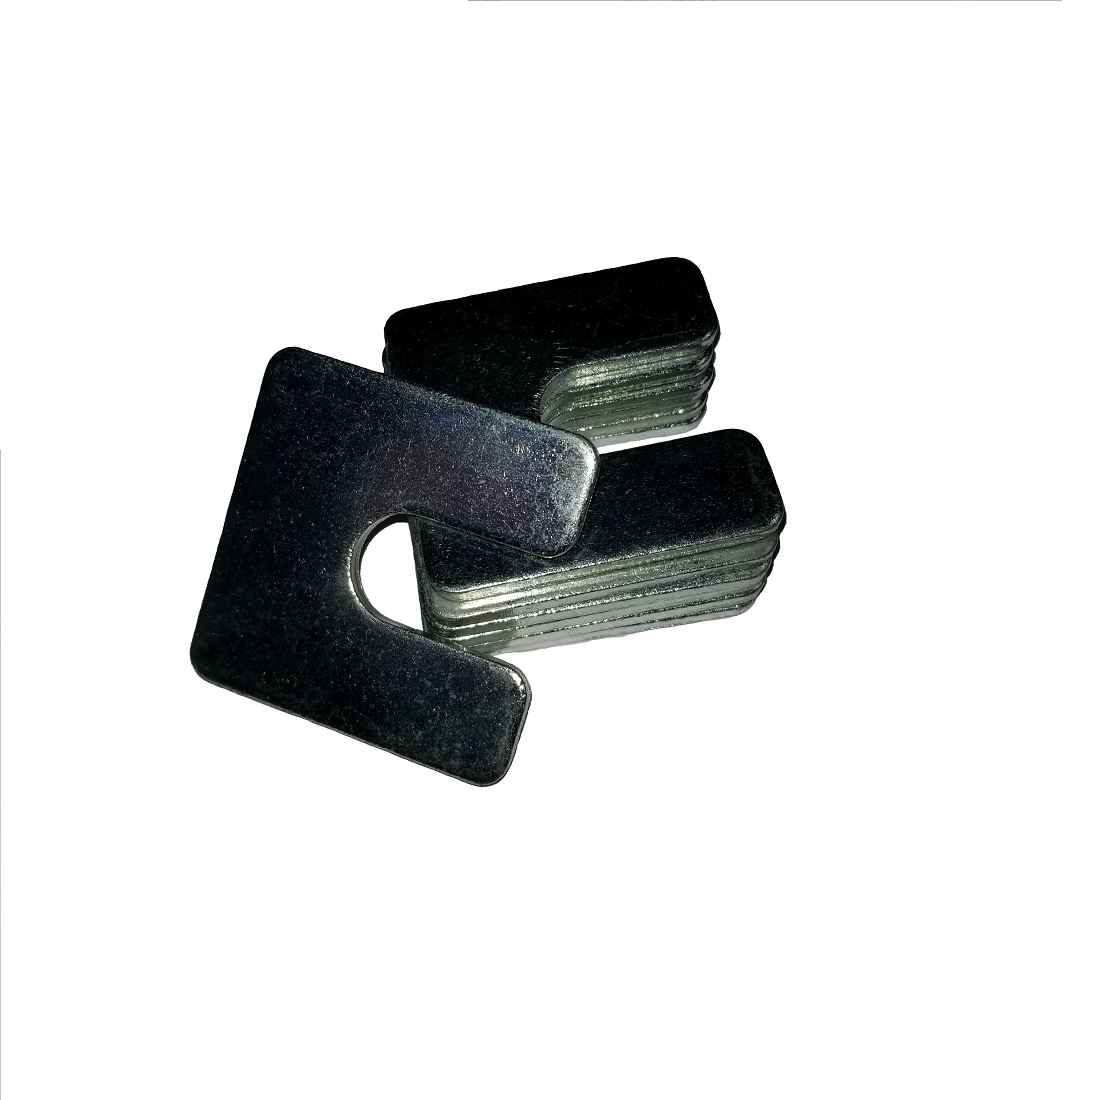 Slotted Square Washer - 0.656 ID, 1.500 OD, 0.125 Thick, Low Carbon Steel - Soft